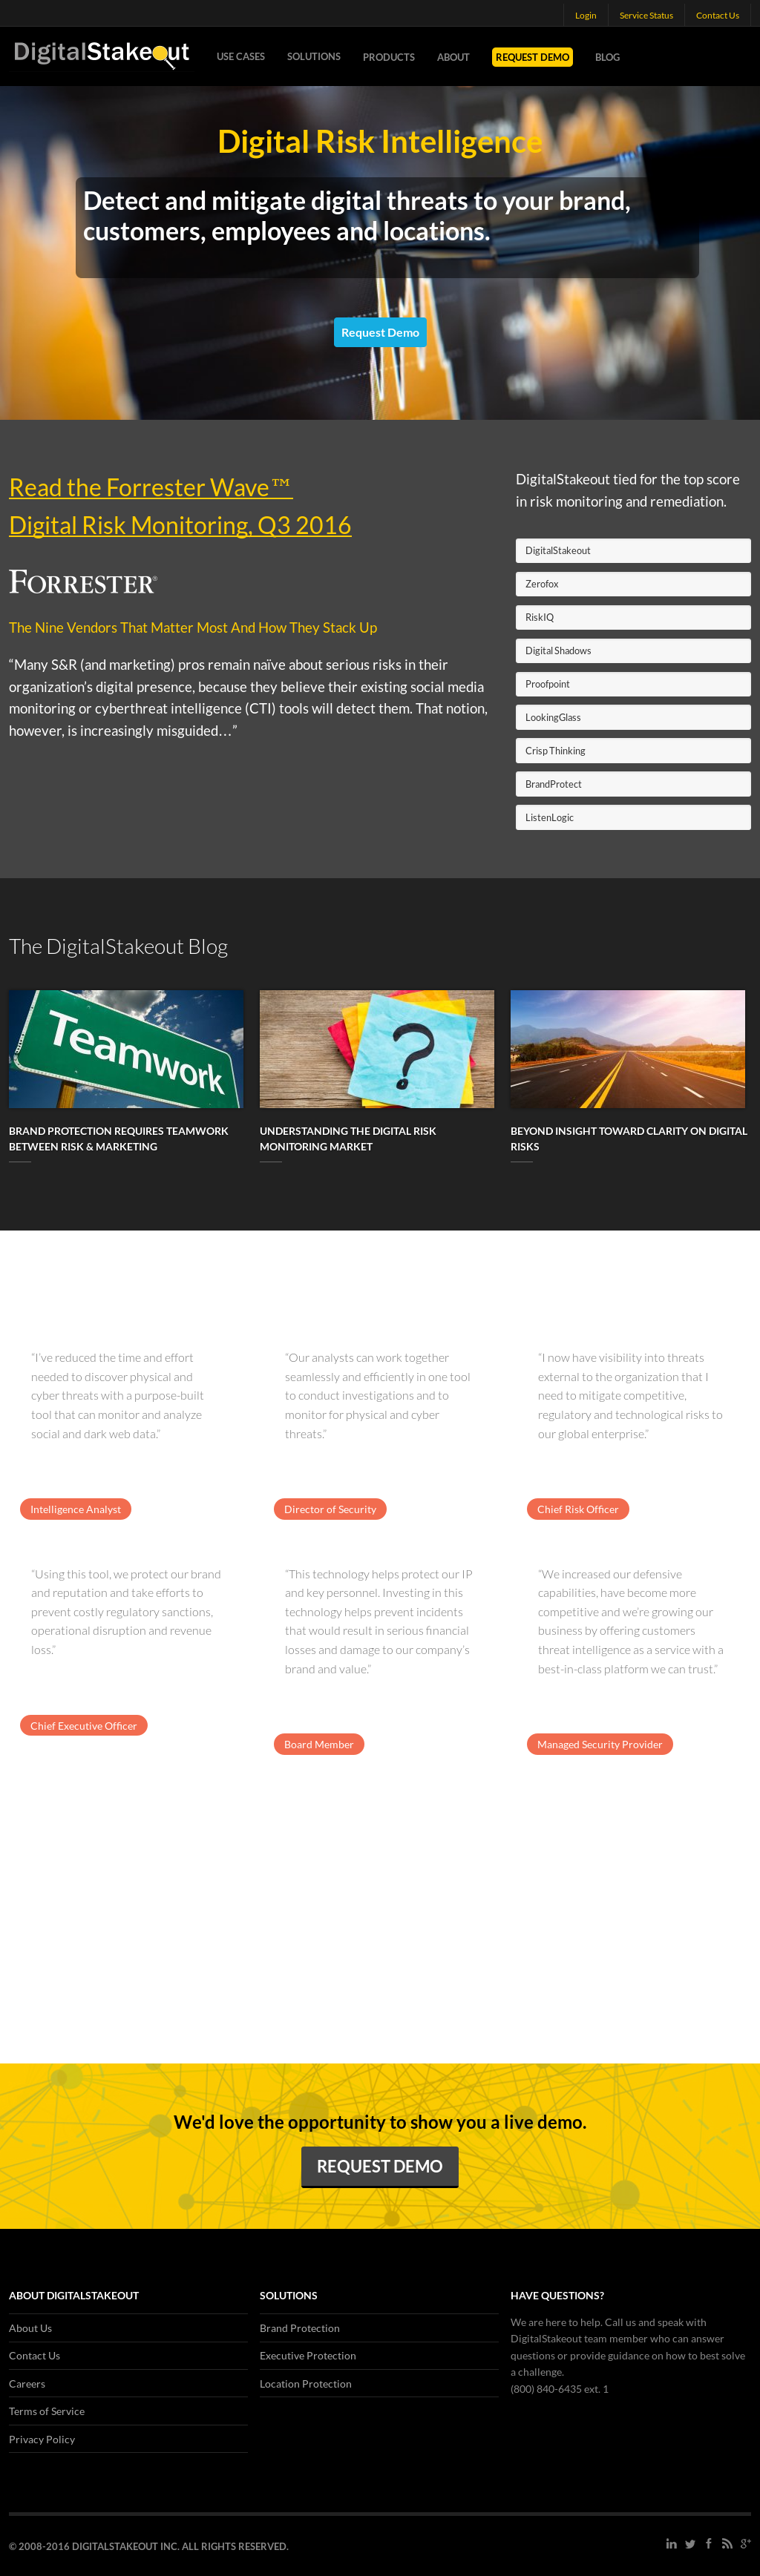 DigitalStakeout Competitors, Revenue and Employees - Owler Company